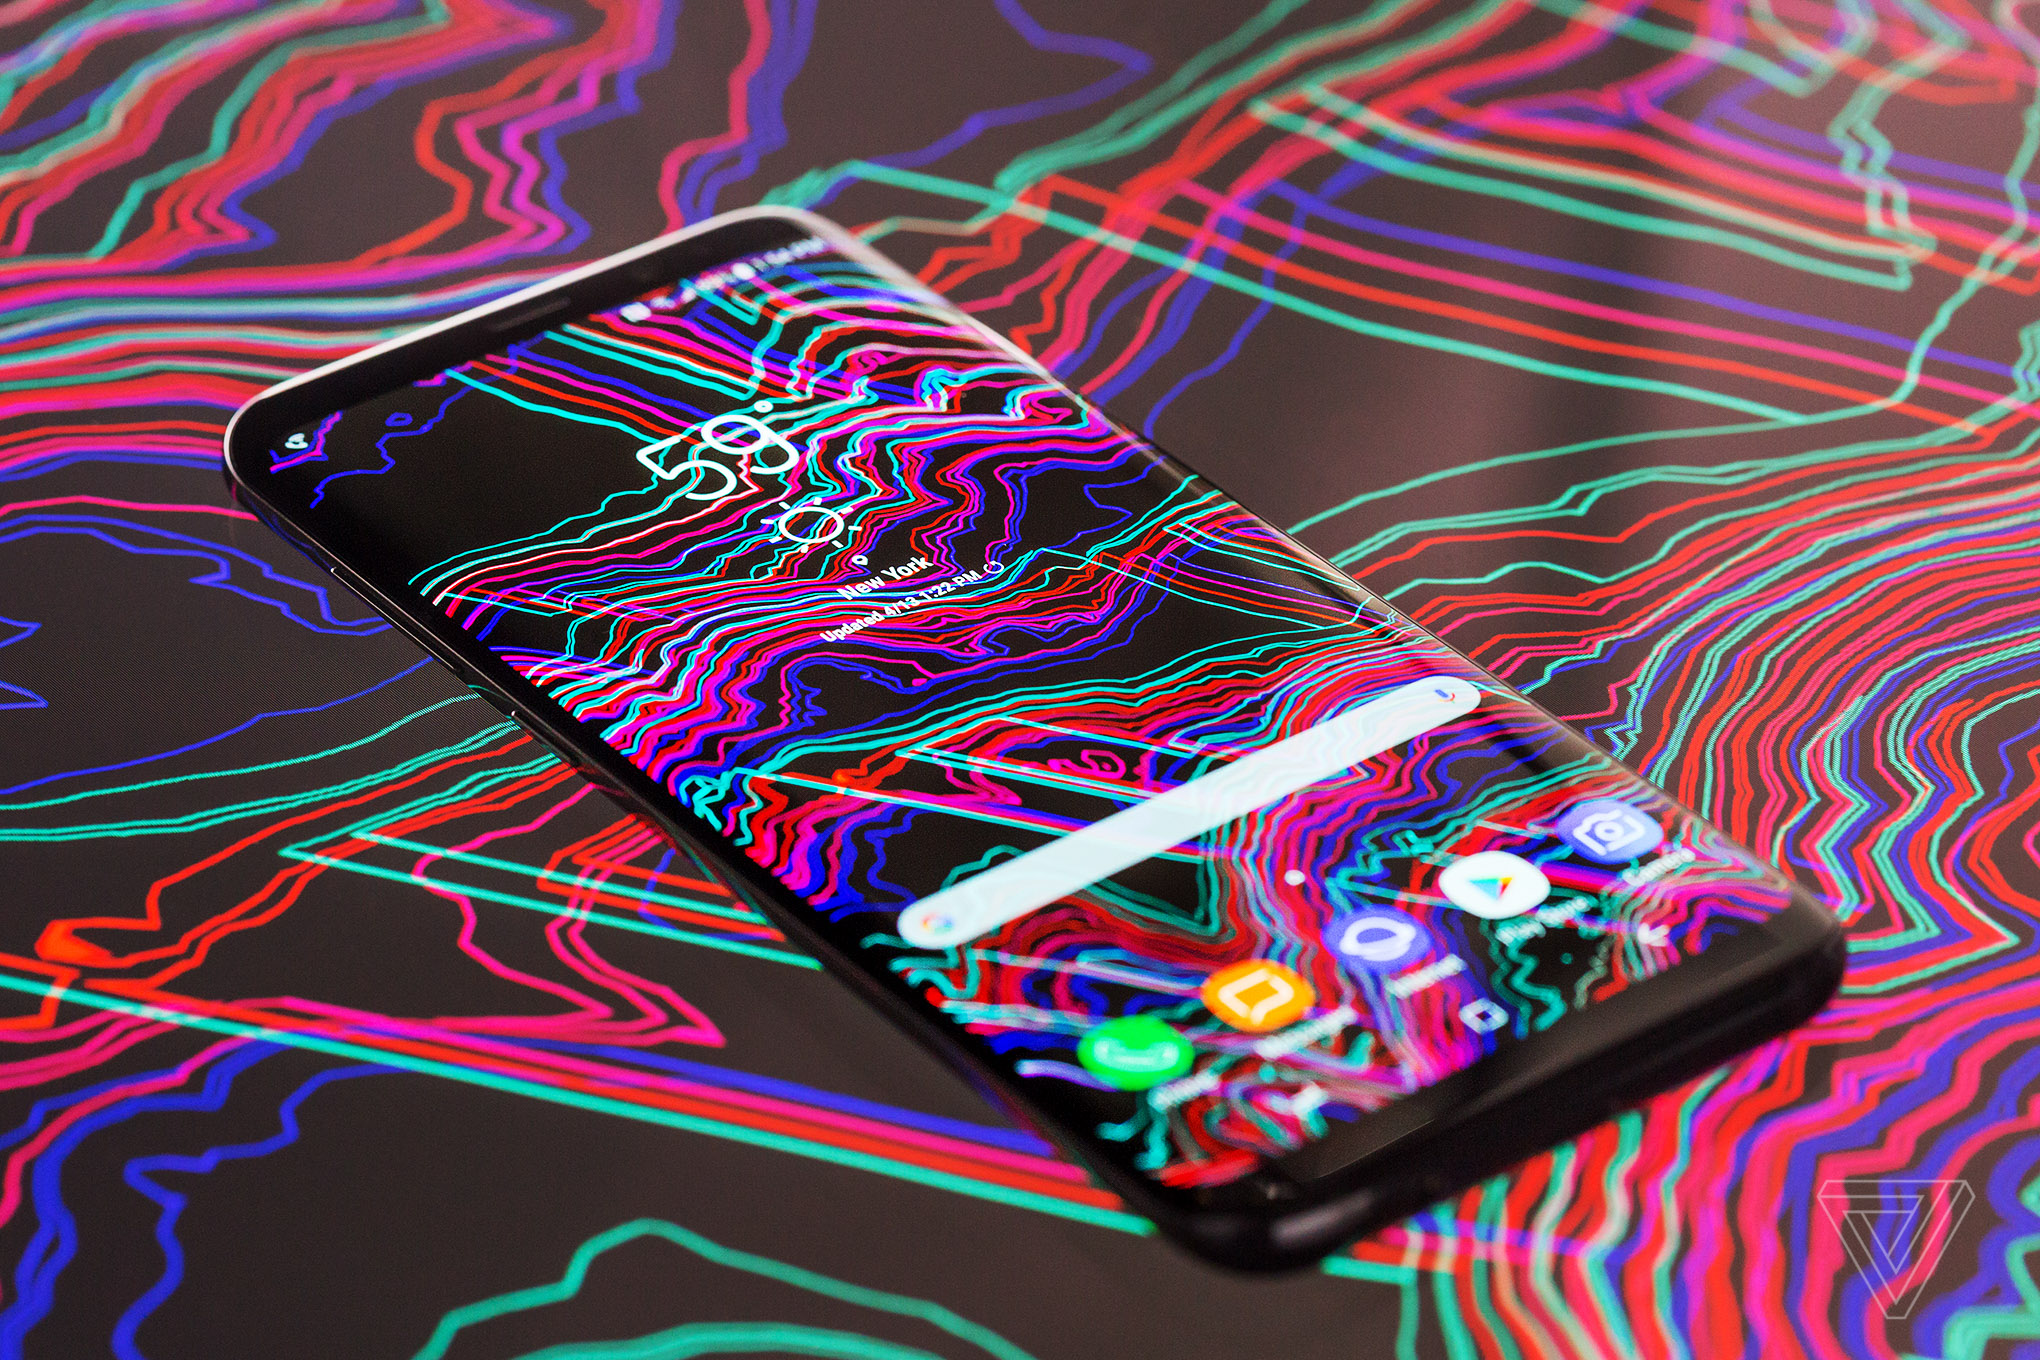 Samsung Galaxy S8 Review: Ahead Of The Curve